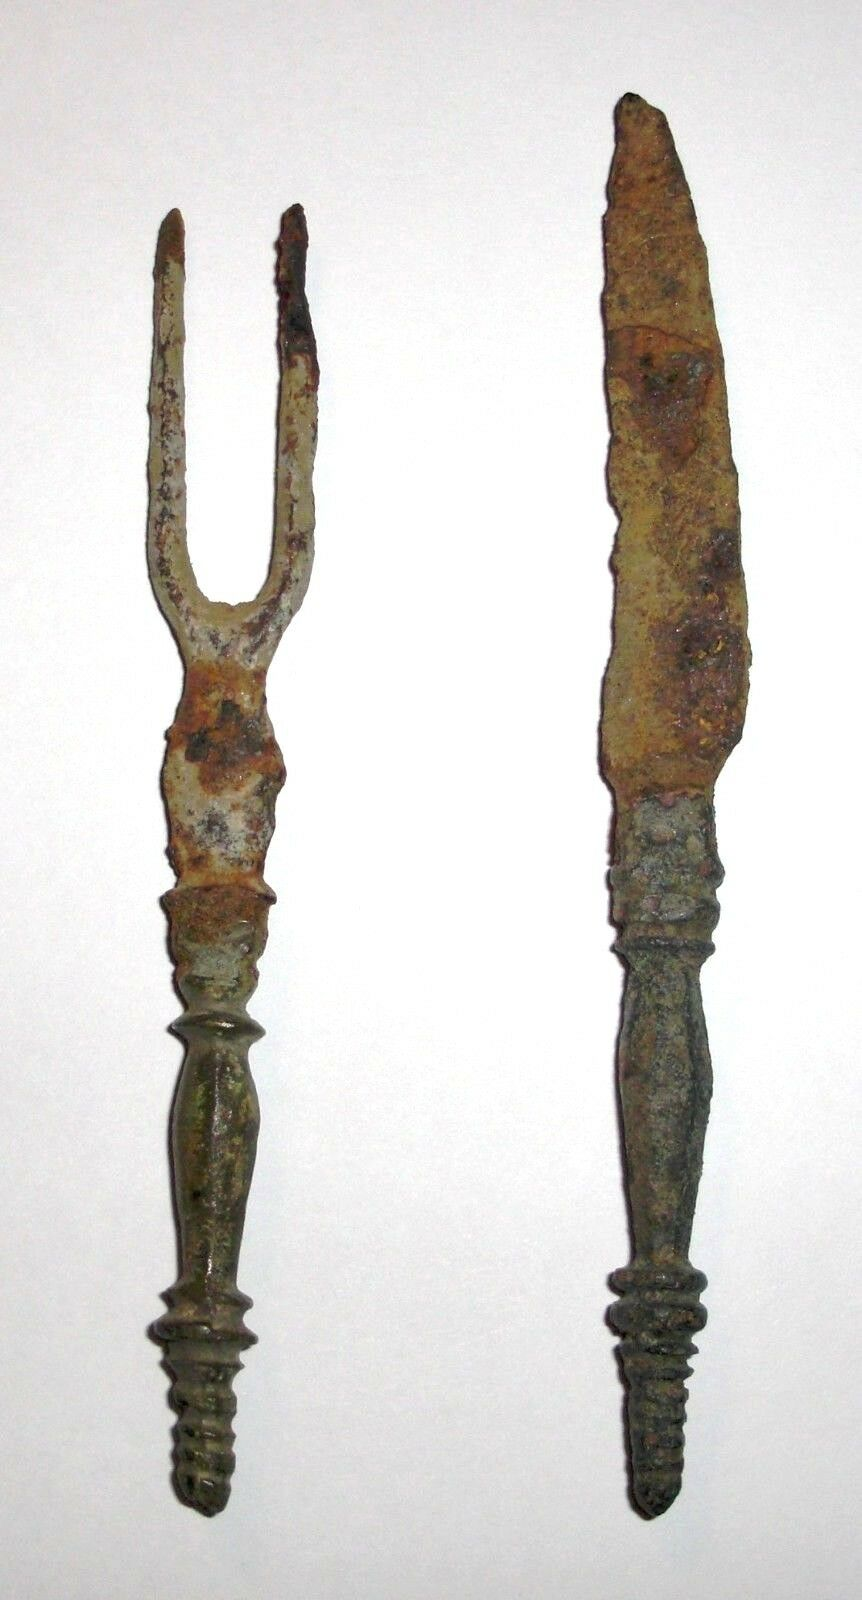 Ancient Roman, Bronze and Iron, 1st - 3rd c. AD. Cutlery Set, Fork and Knife